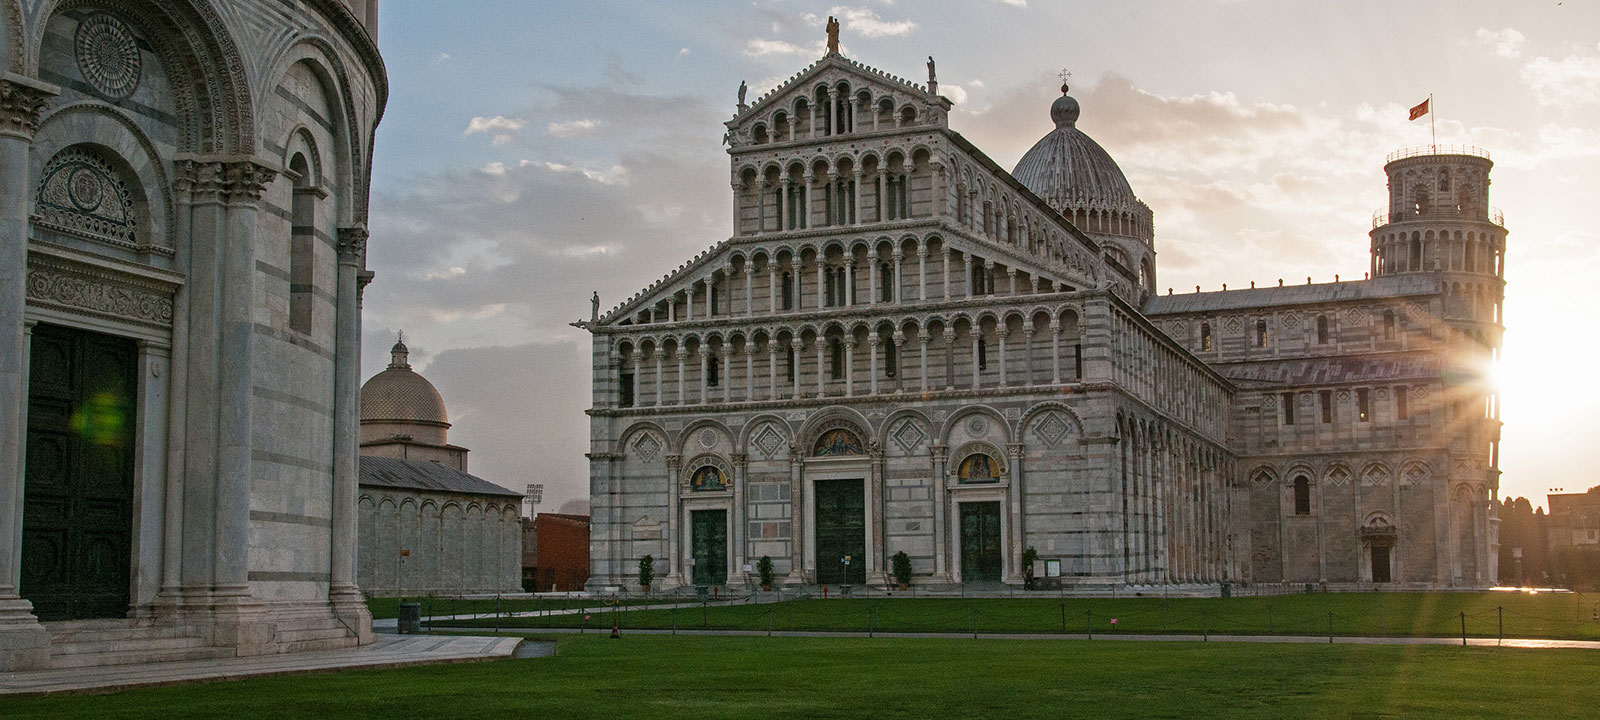 The Pisa Sindrom: What a beauty!